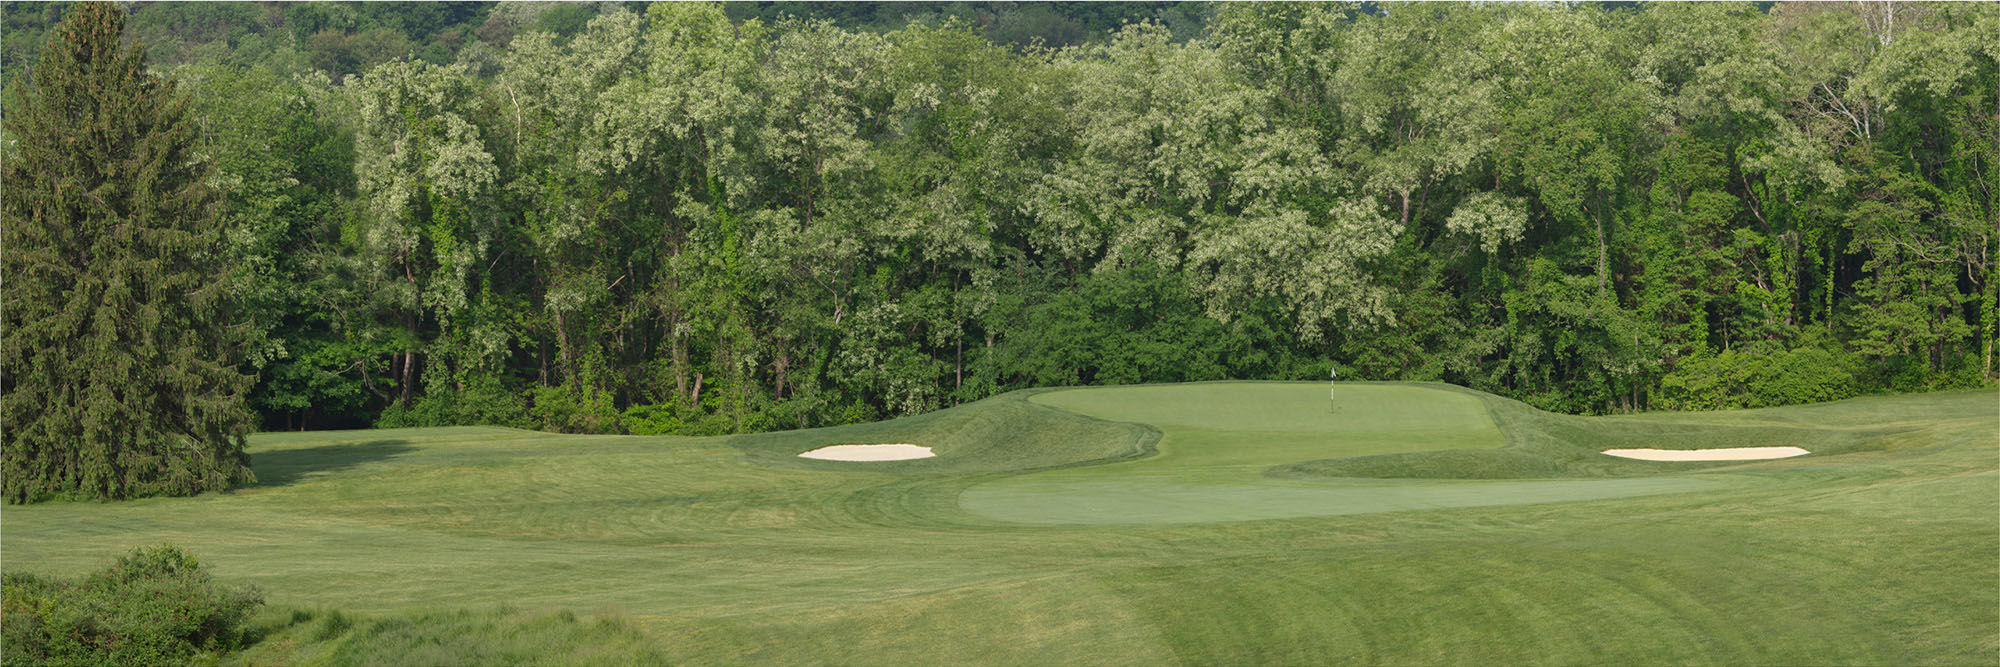 Golf Course Image - Pittsburgh Field Club No. 14